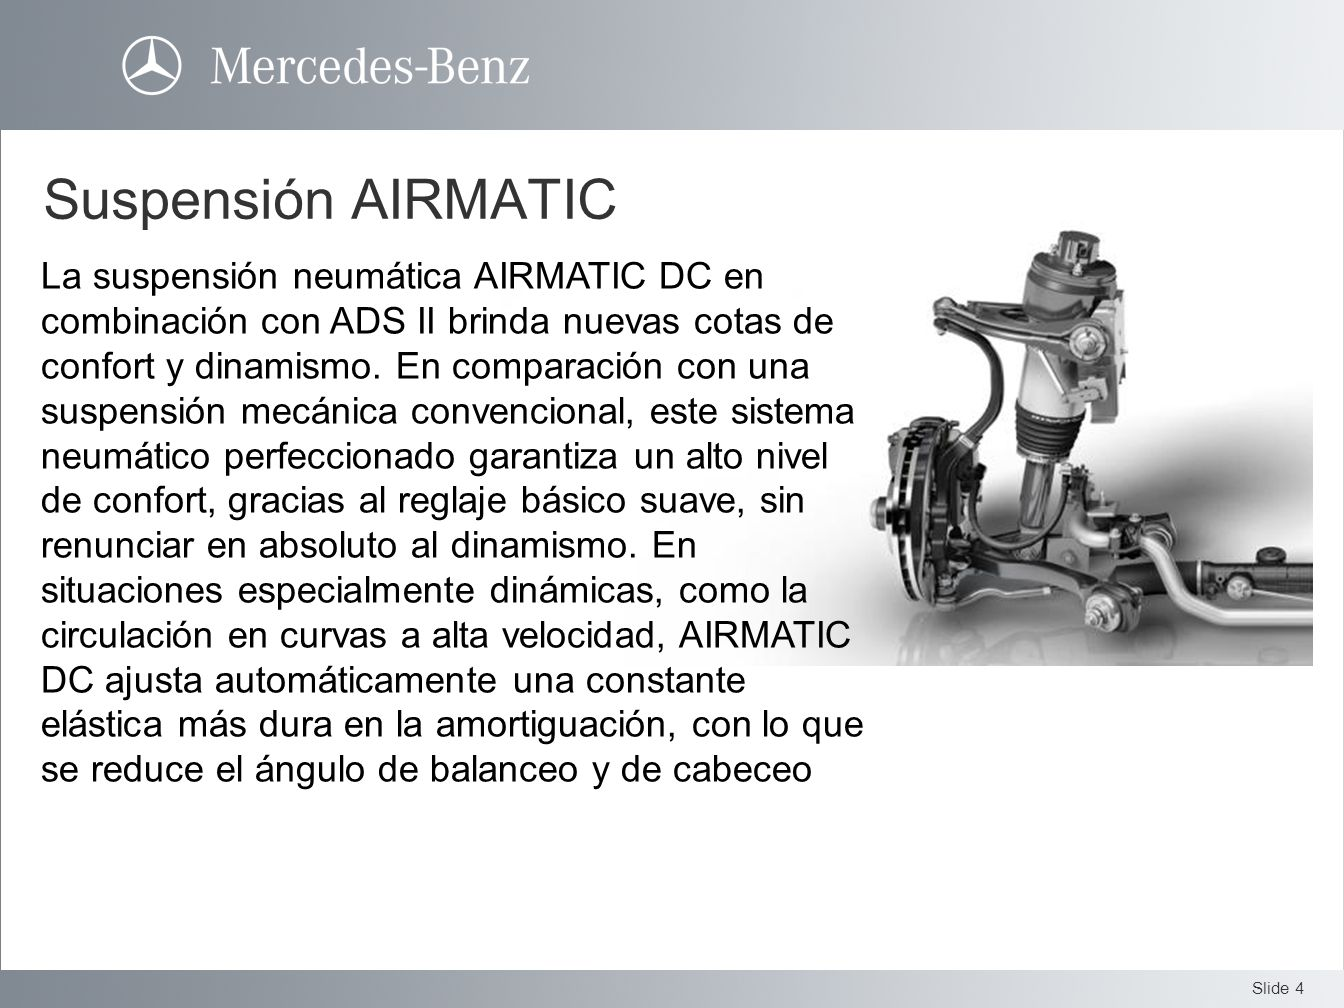 Suspensión AIRMATIC